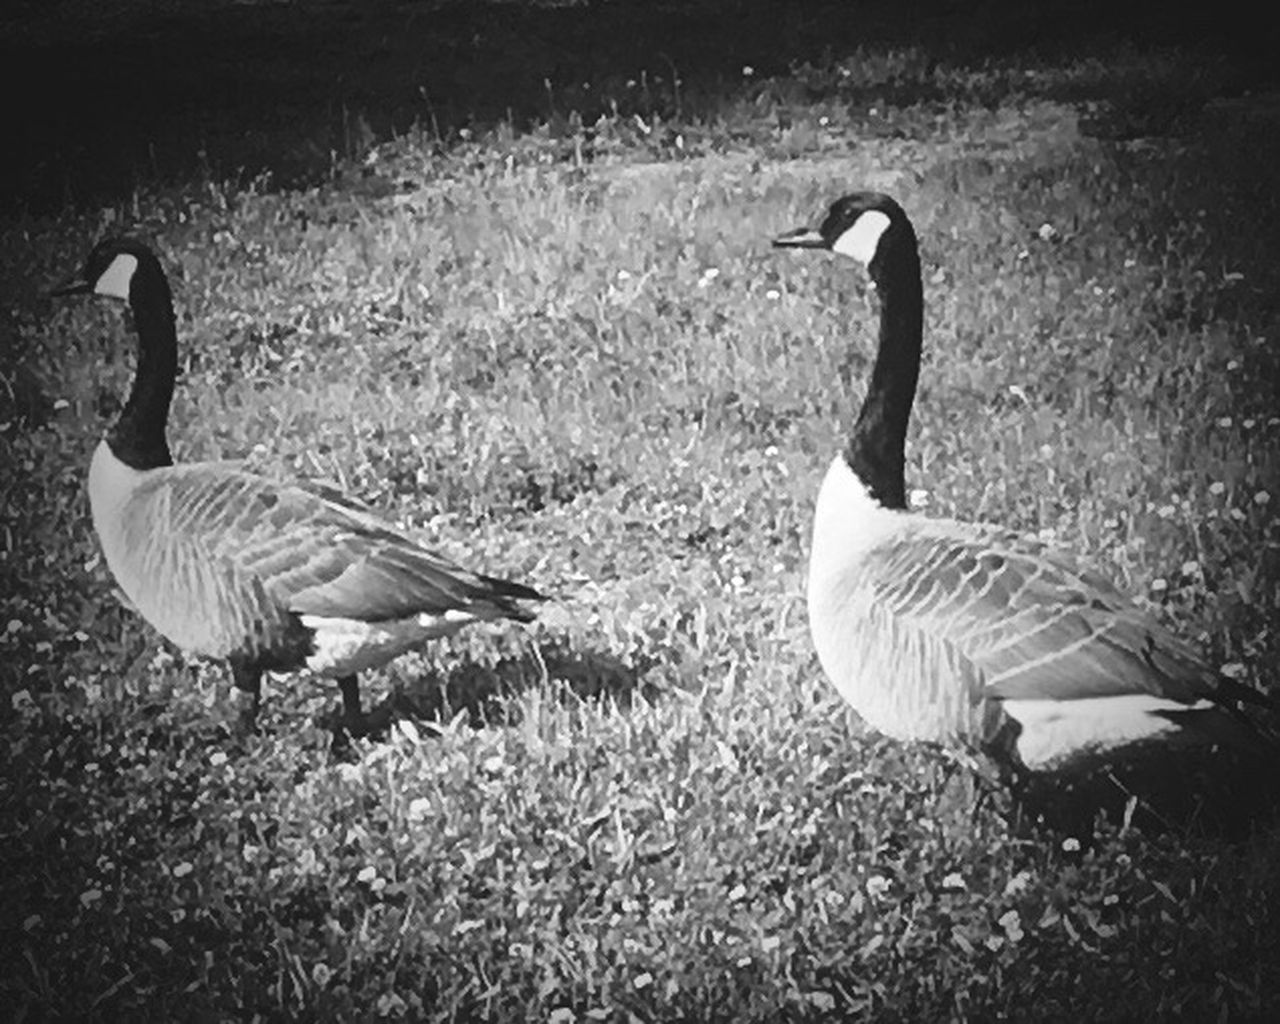 Two Canadian geese looking for food HUNGRY!!! Check This Out Iphonephotography Nature Perfect Blackandwhiteportraits Relaxedand Happy Posing For The Camera Wild Birds